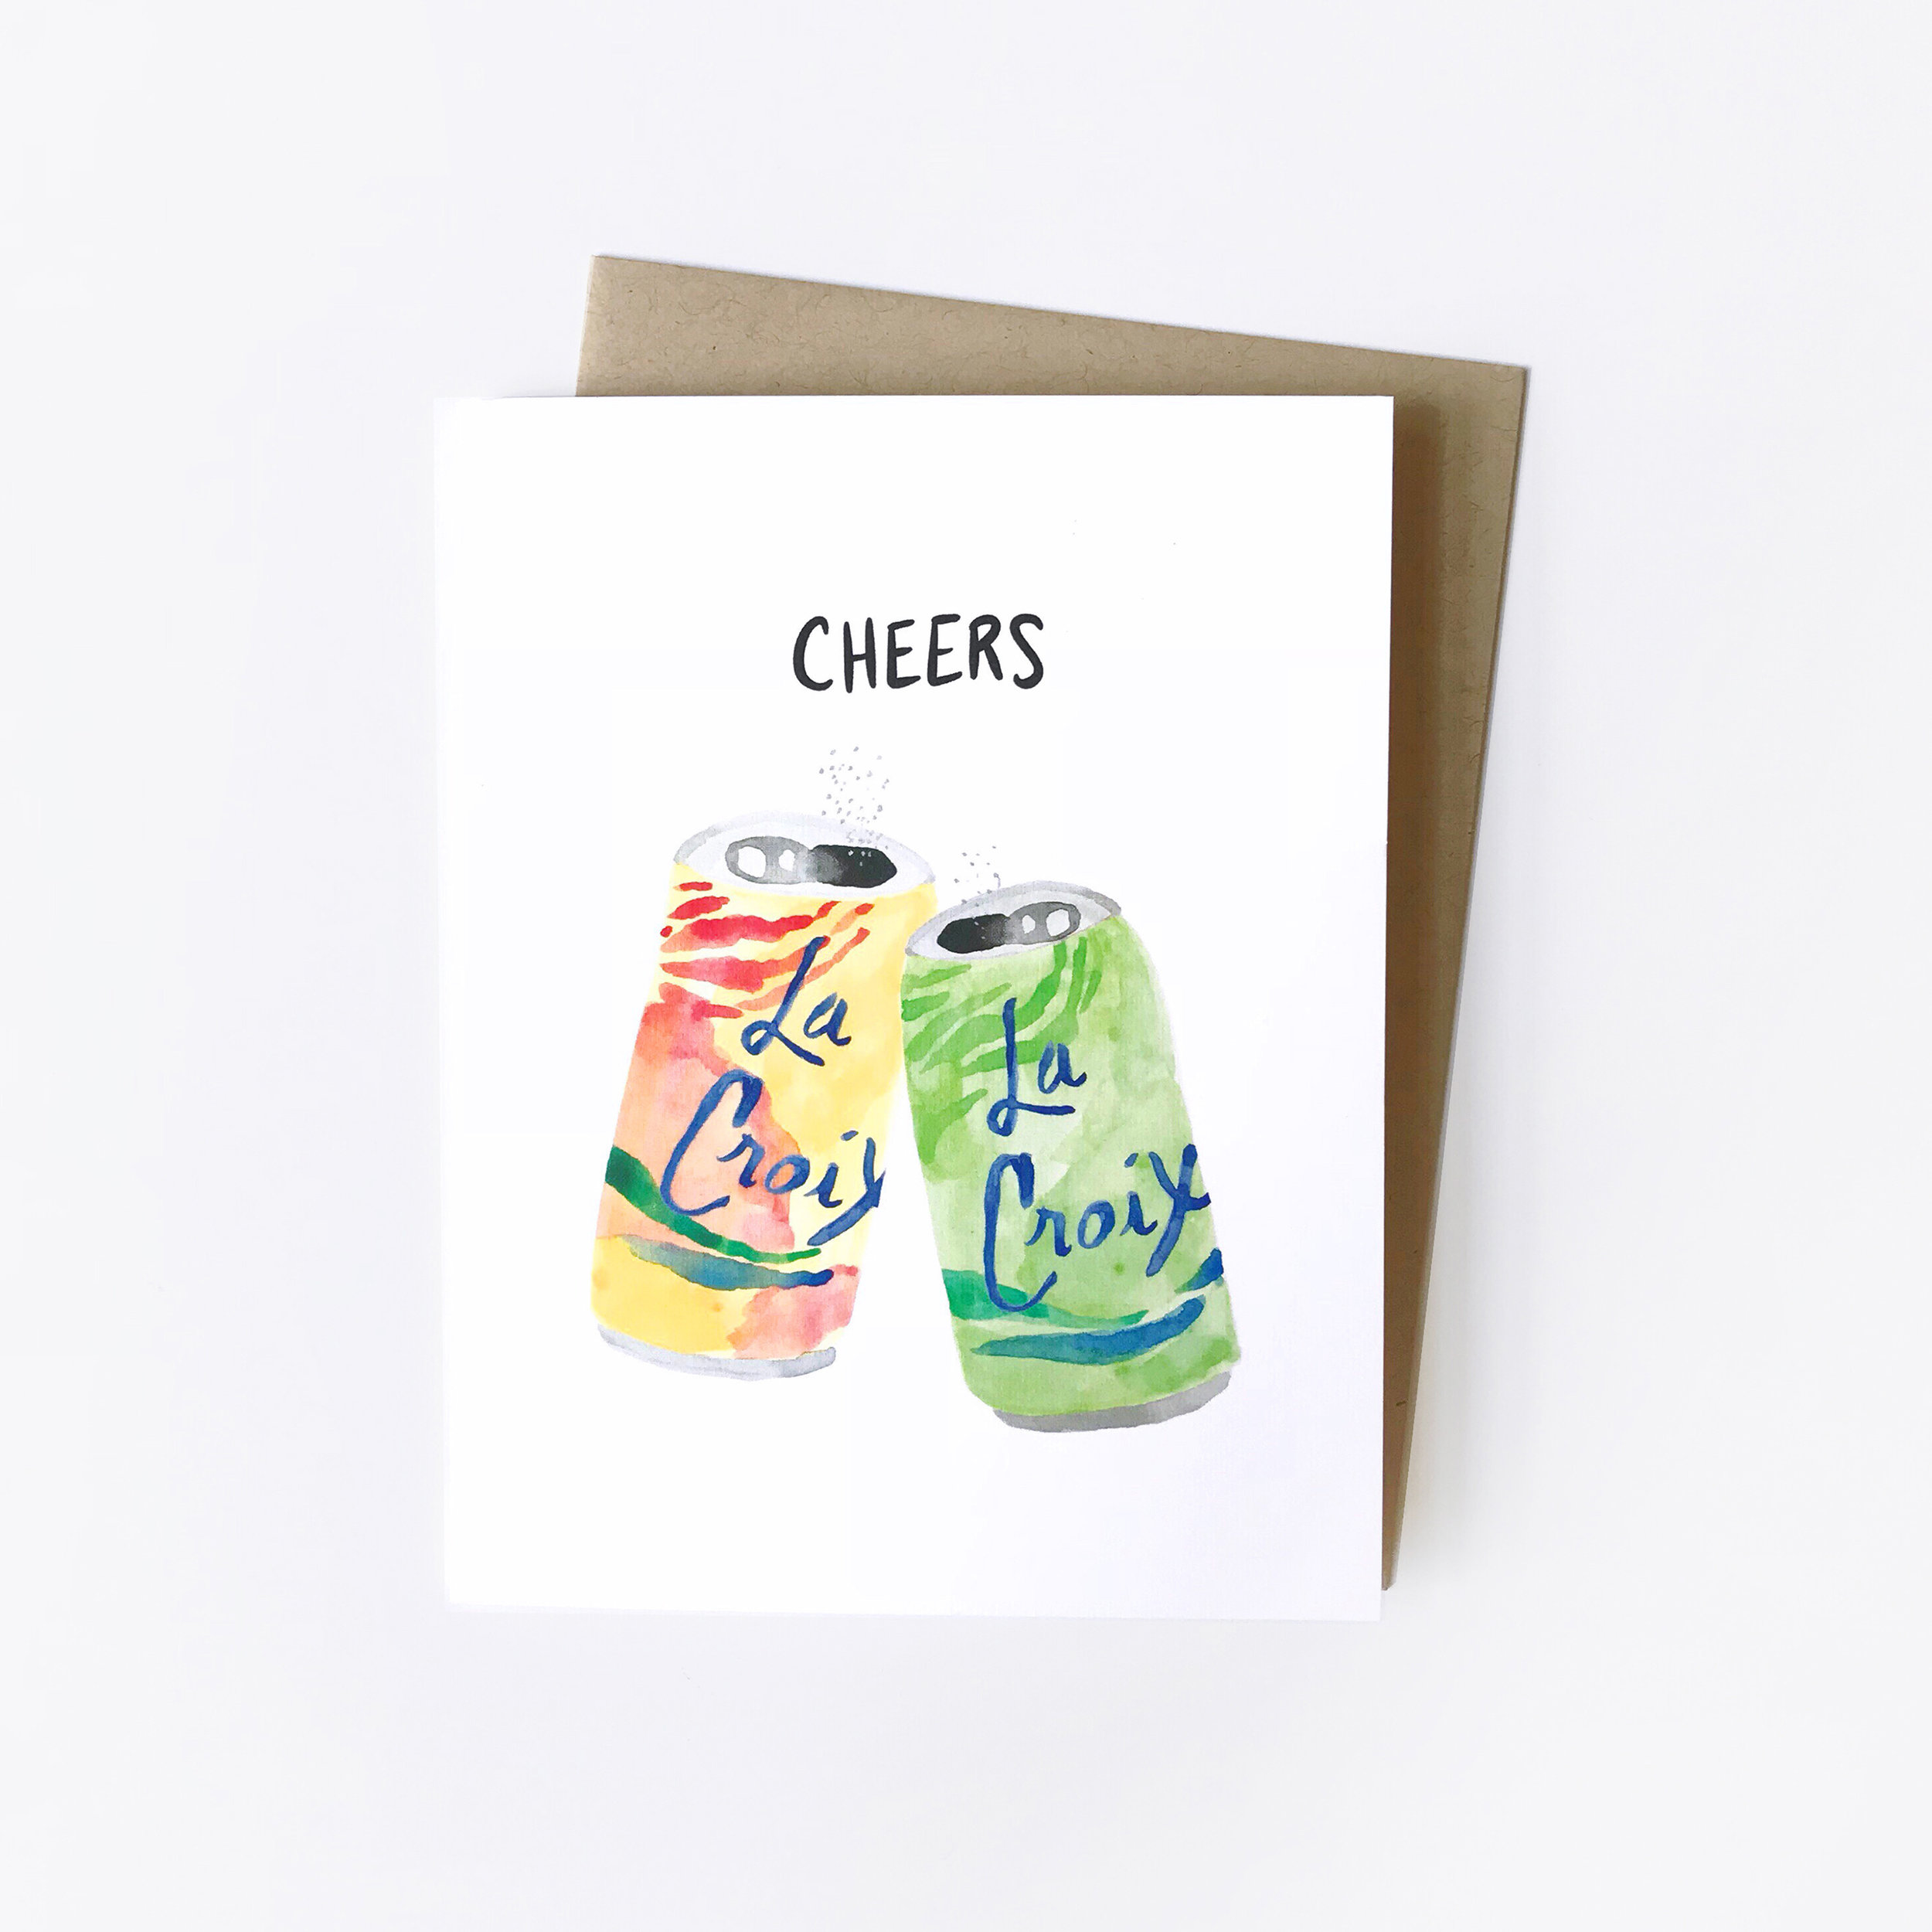 CHEERS CARD $5.50